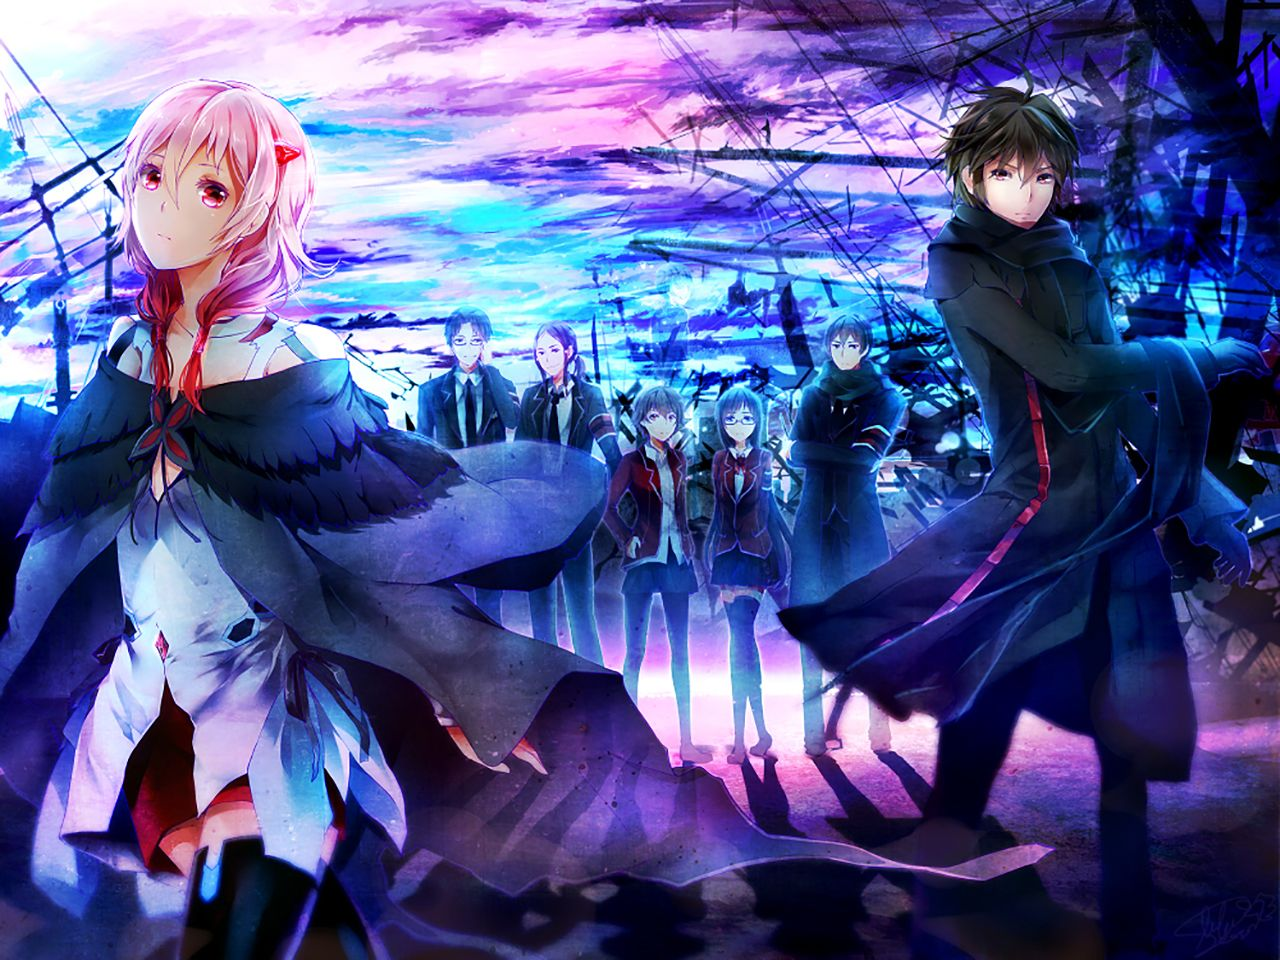 Guilty Crown Wallpaper Inori: Anime Guilty Crown Shu Ouma Inori Yuzuriha Wallpaper